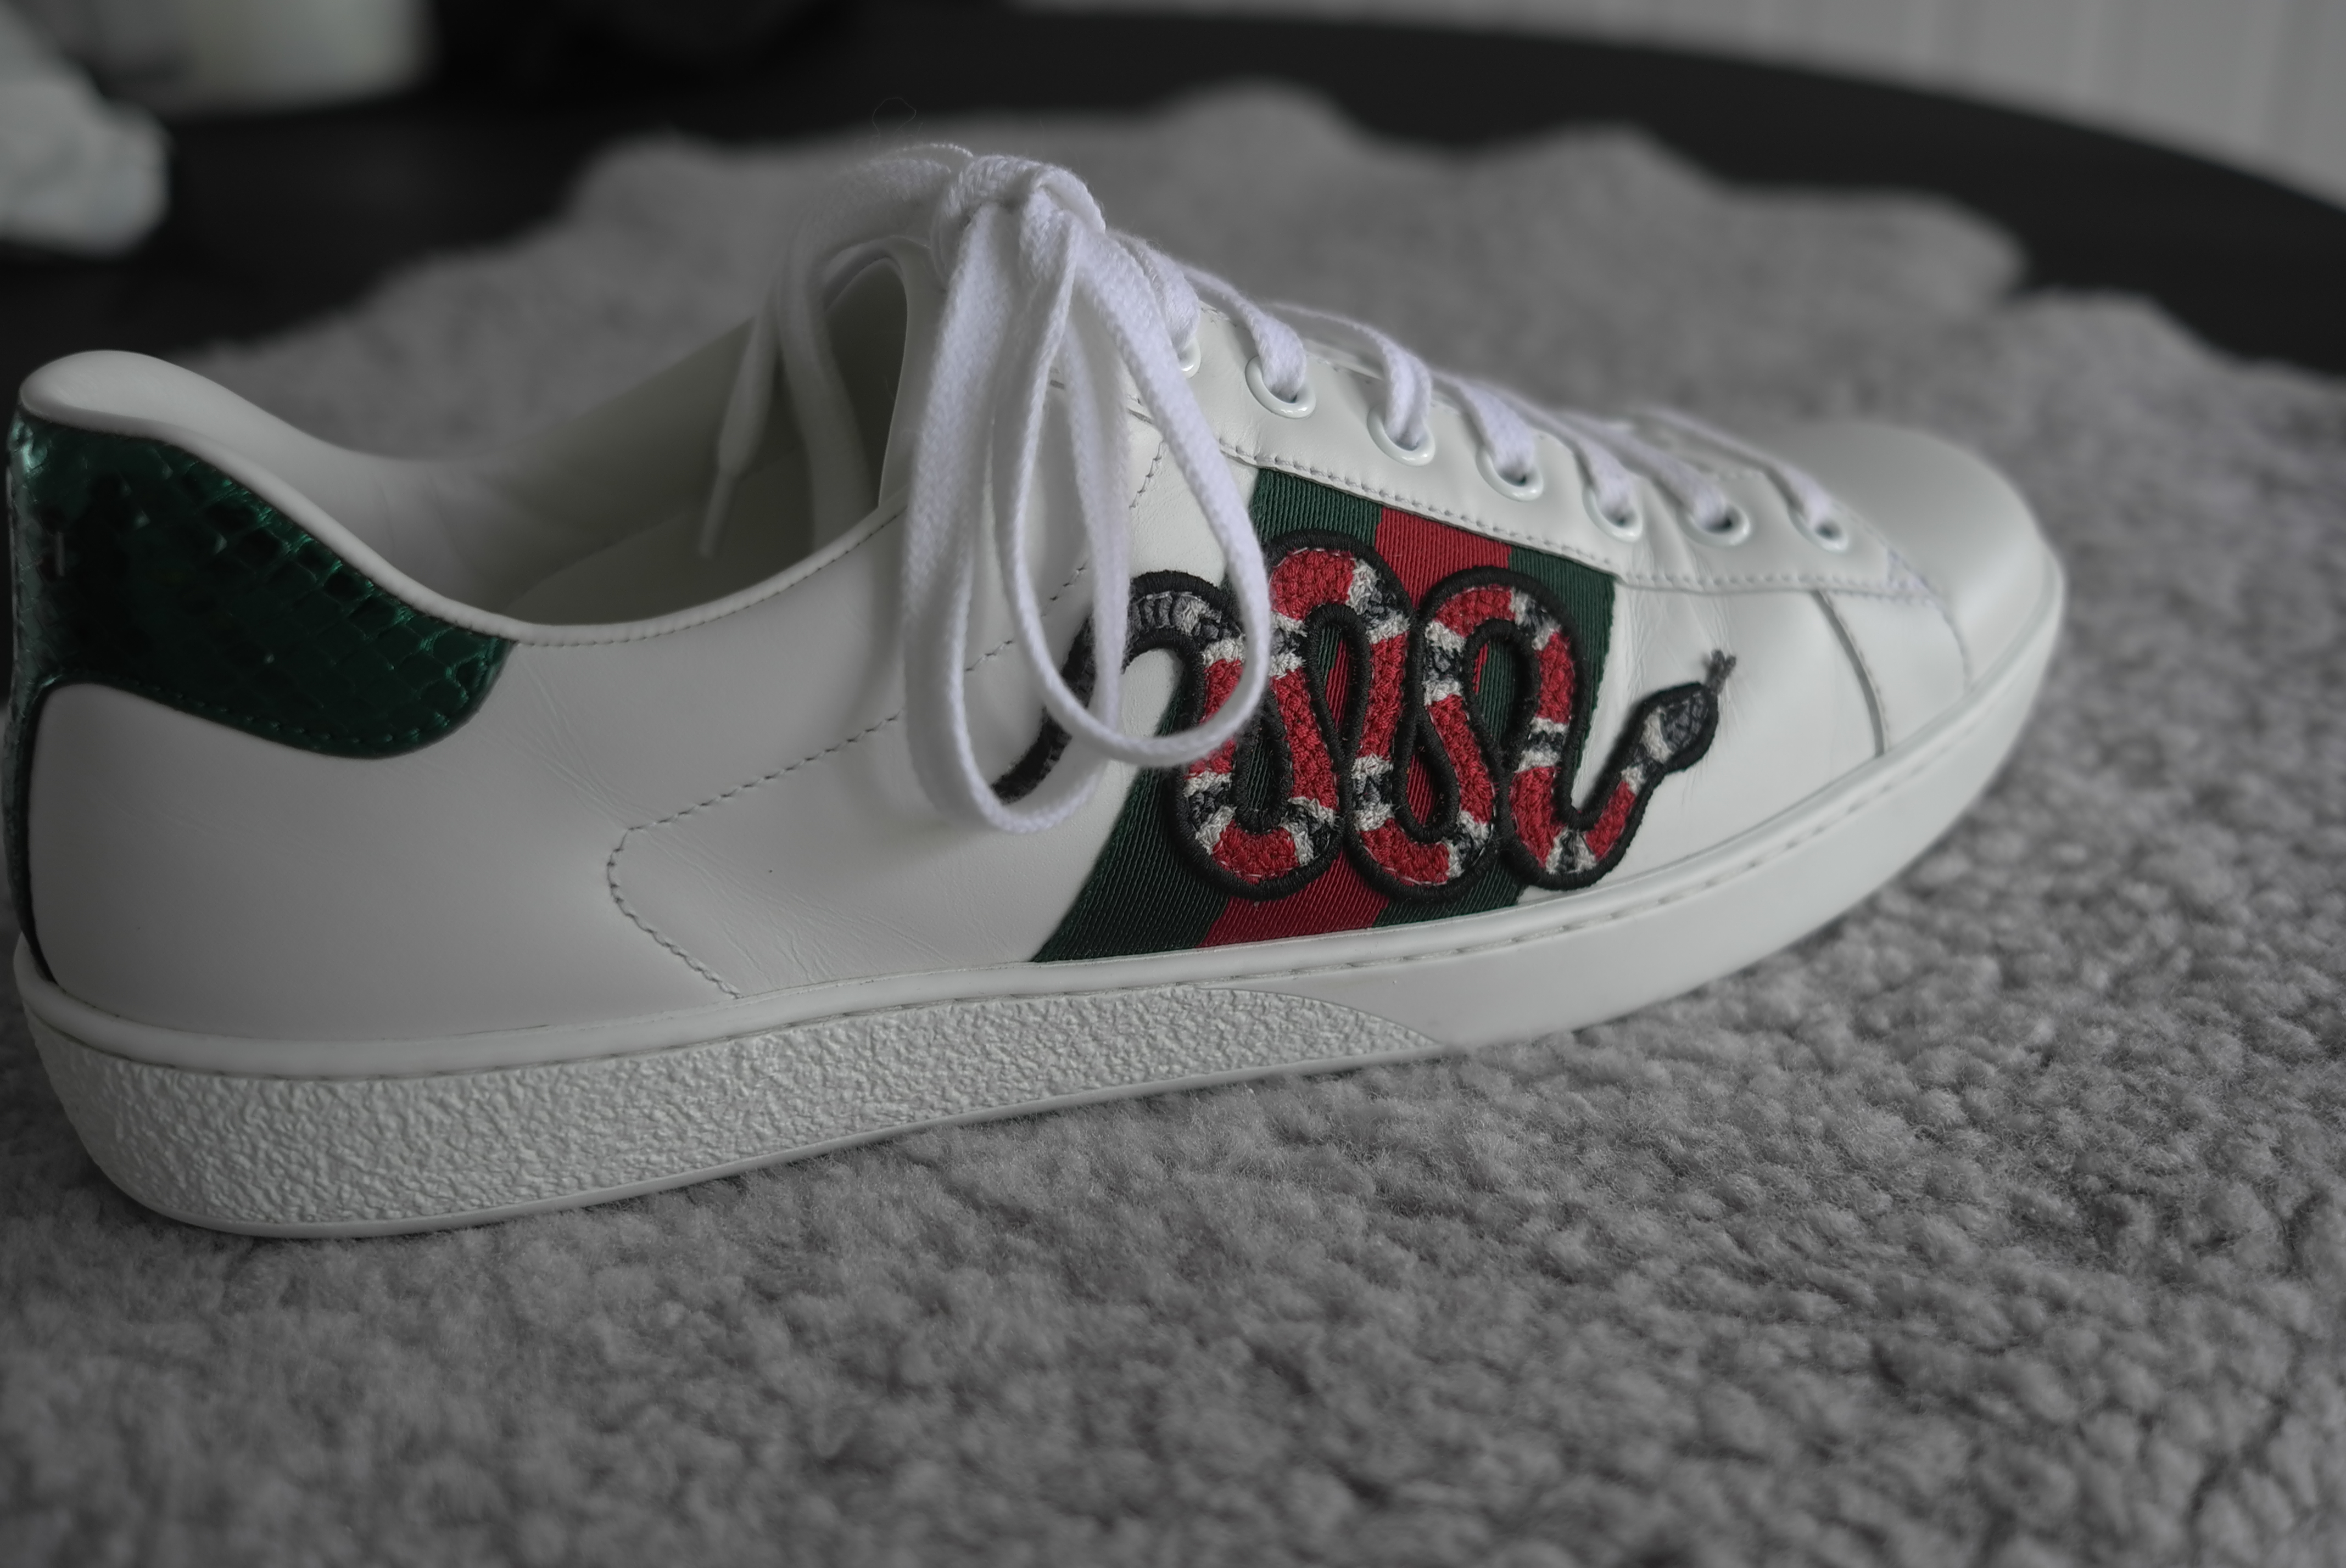 2a1ee4d948f Gucci Ace Snake Size 8 - Low-Top Sneakers for Sale - Grailed